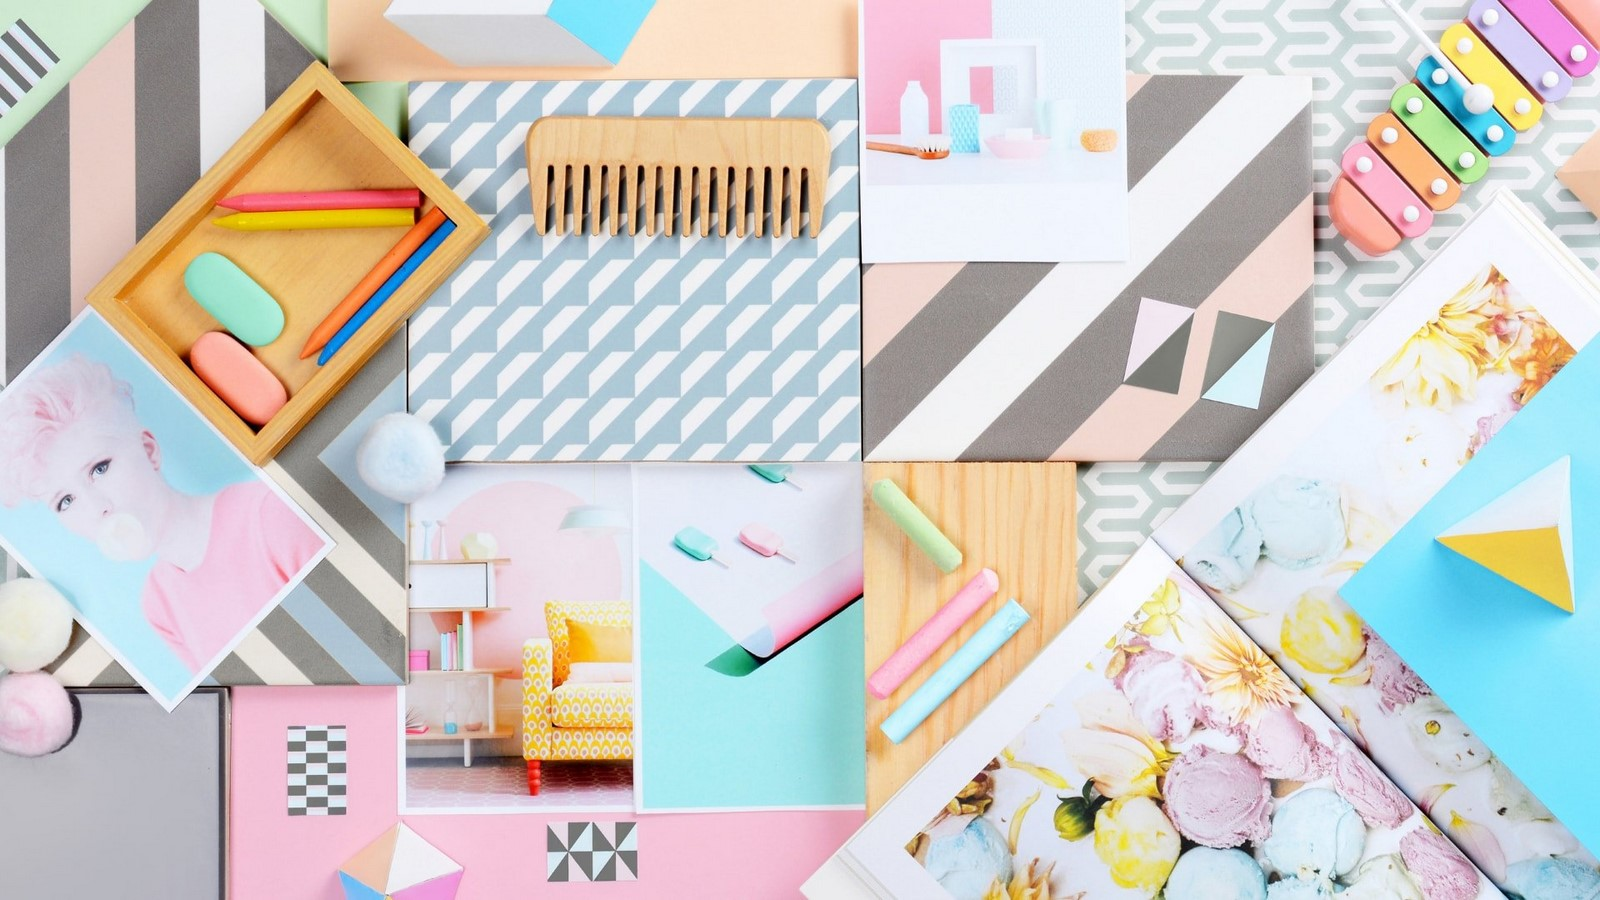 10 things to remember while designing a mood board - Sheet2